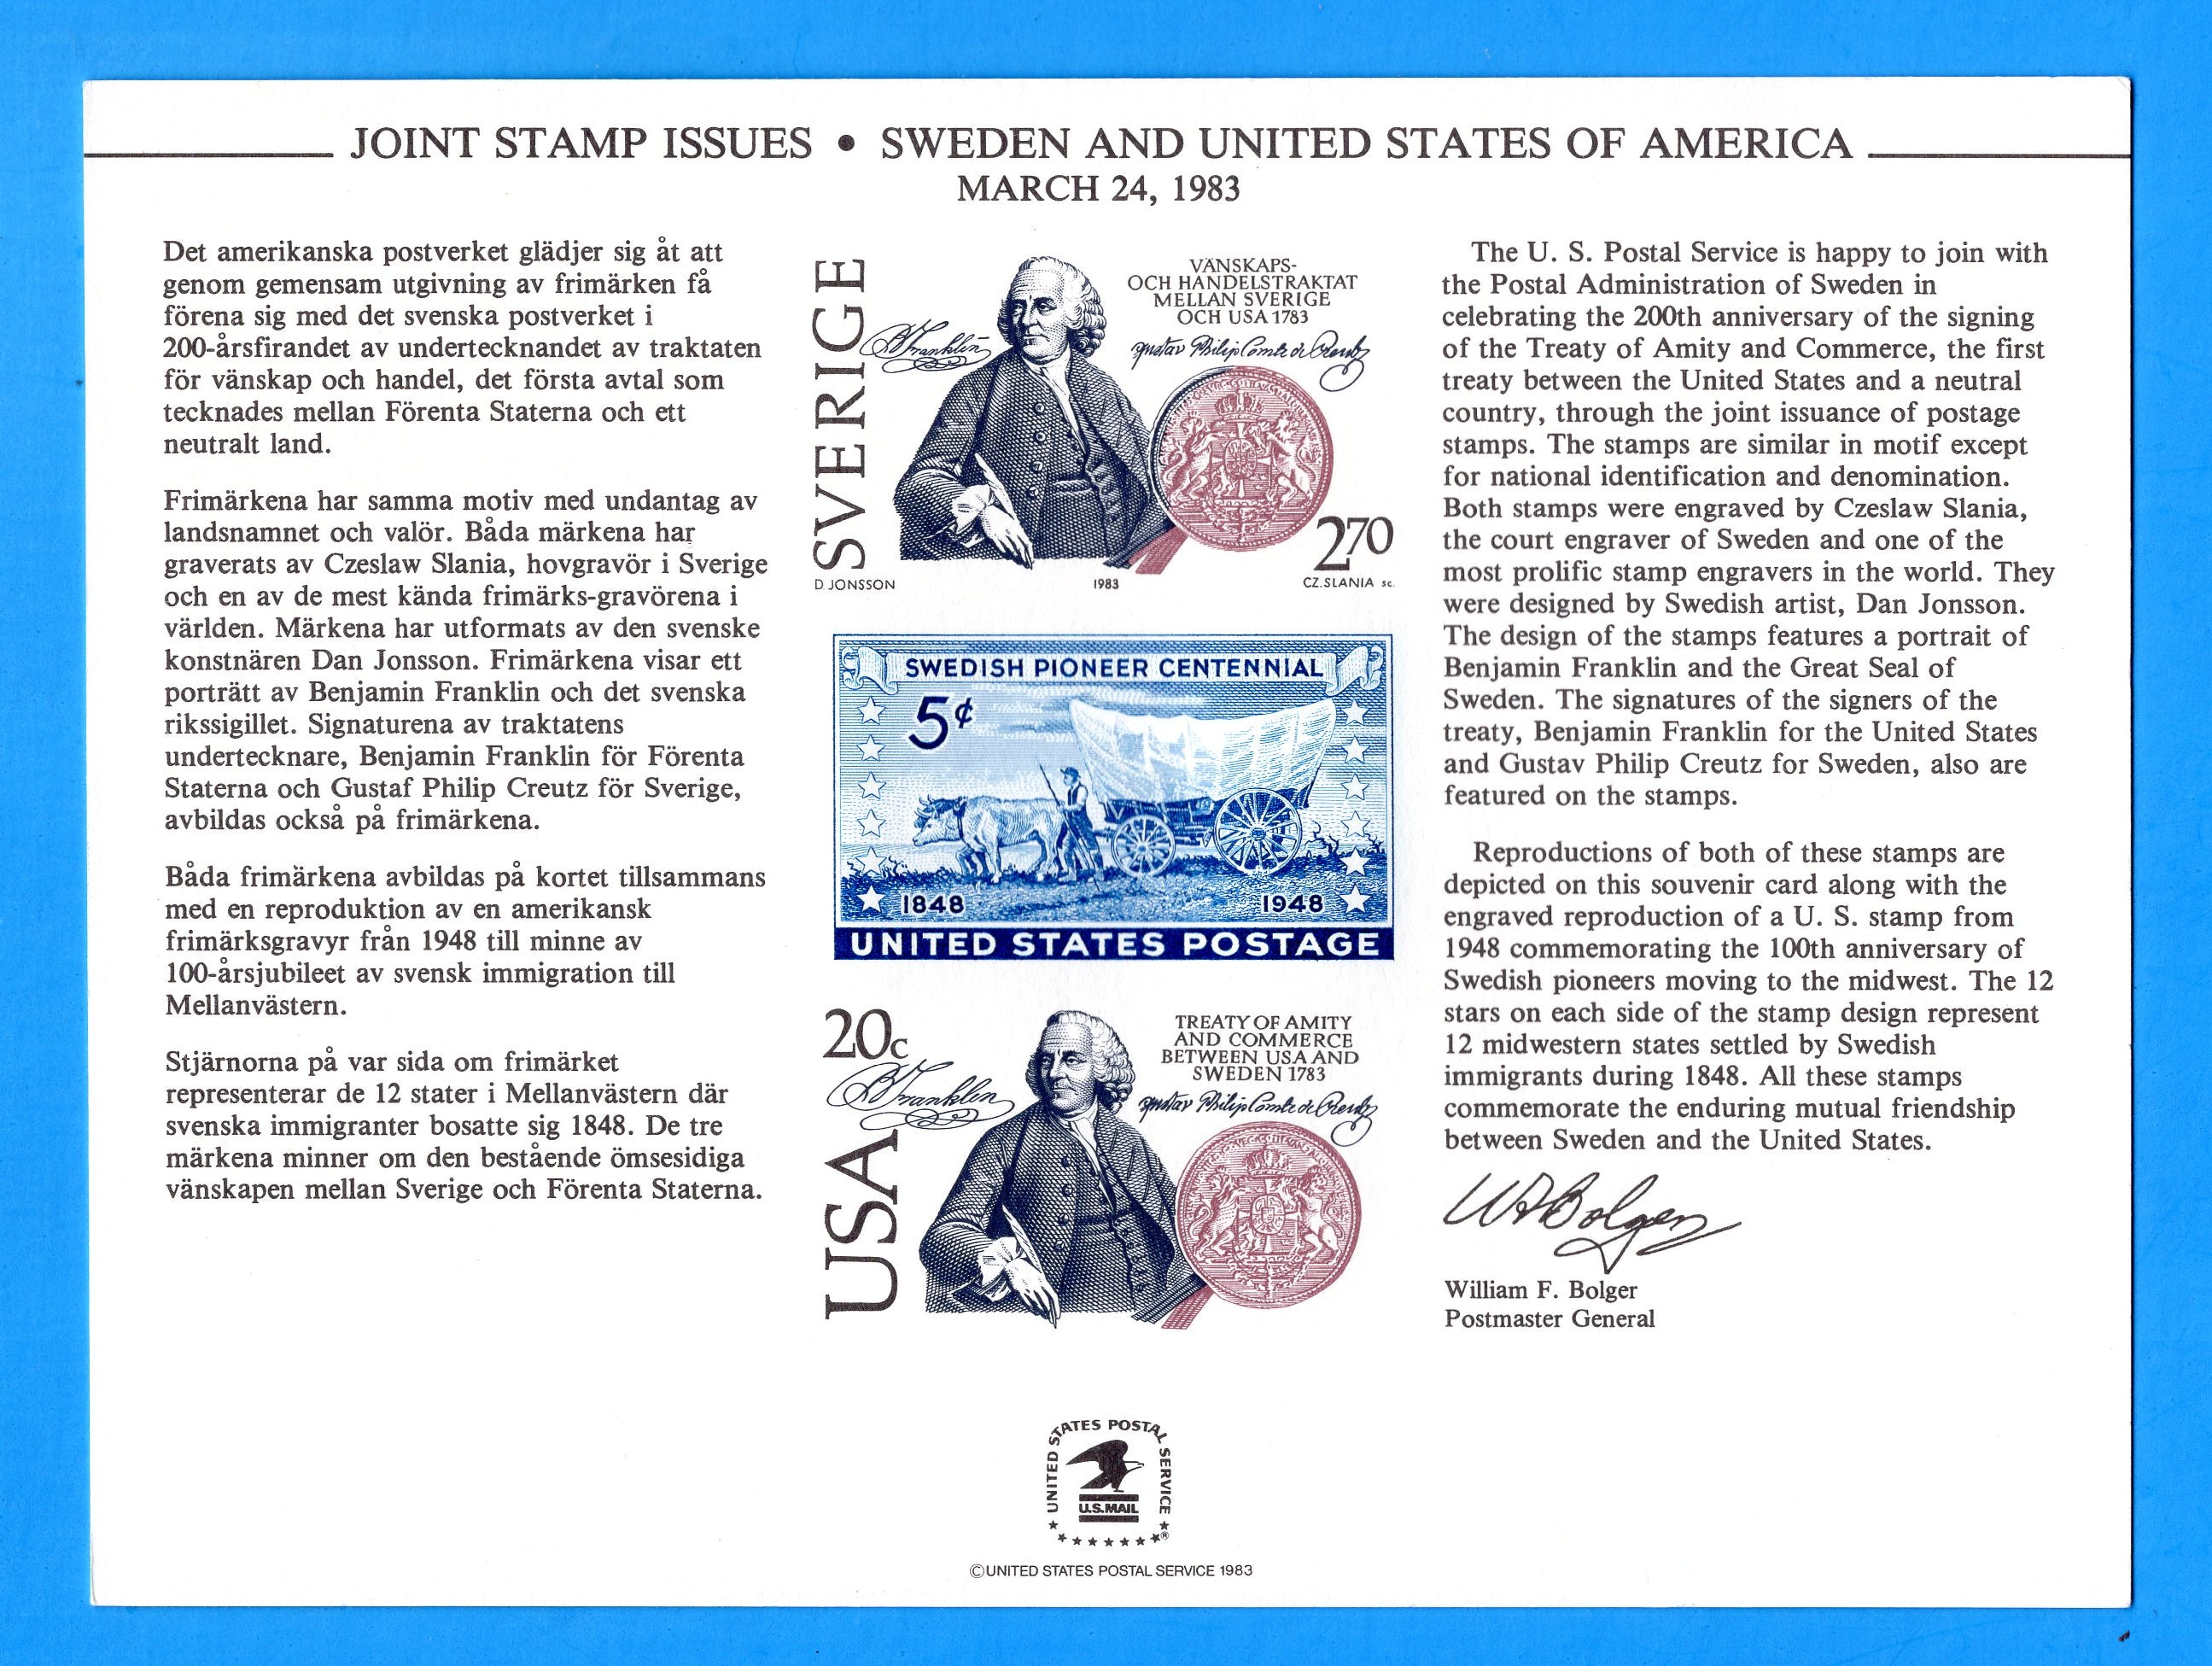 Joint Stamp Issues Sweden and United States March 24, 1983 Souvenir Card